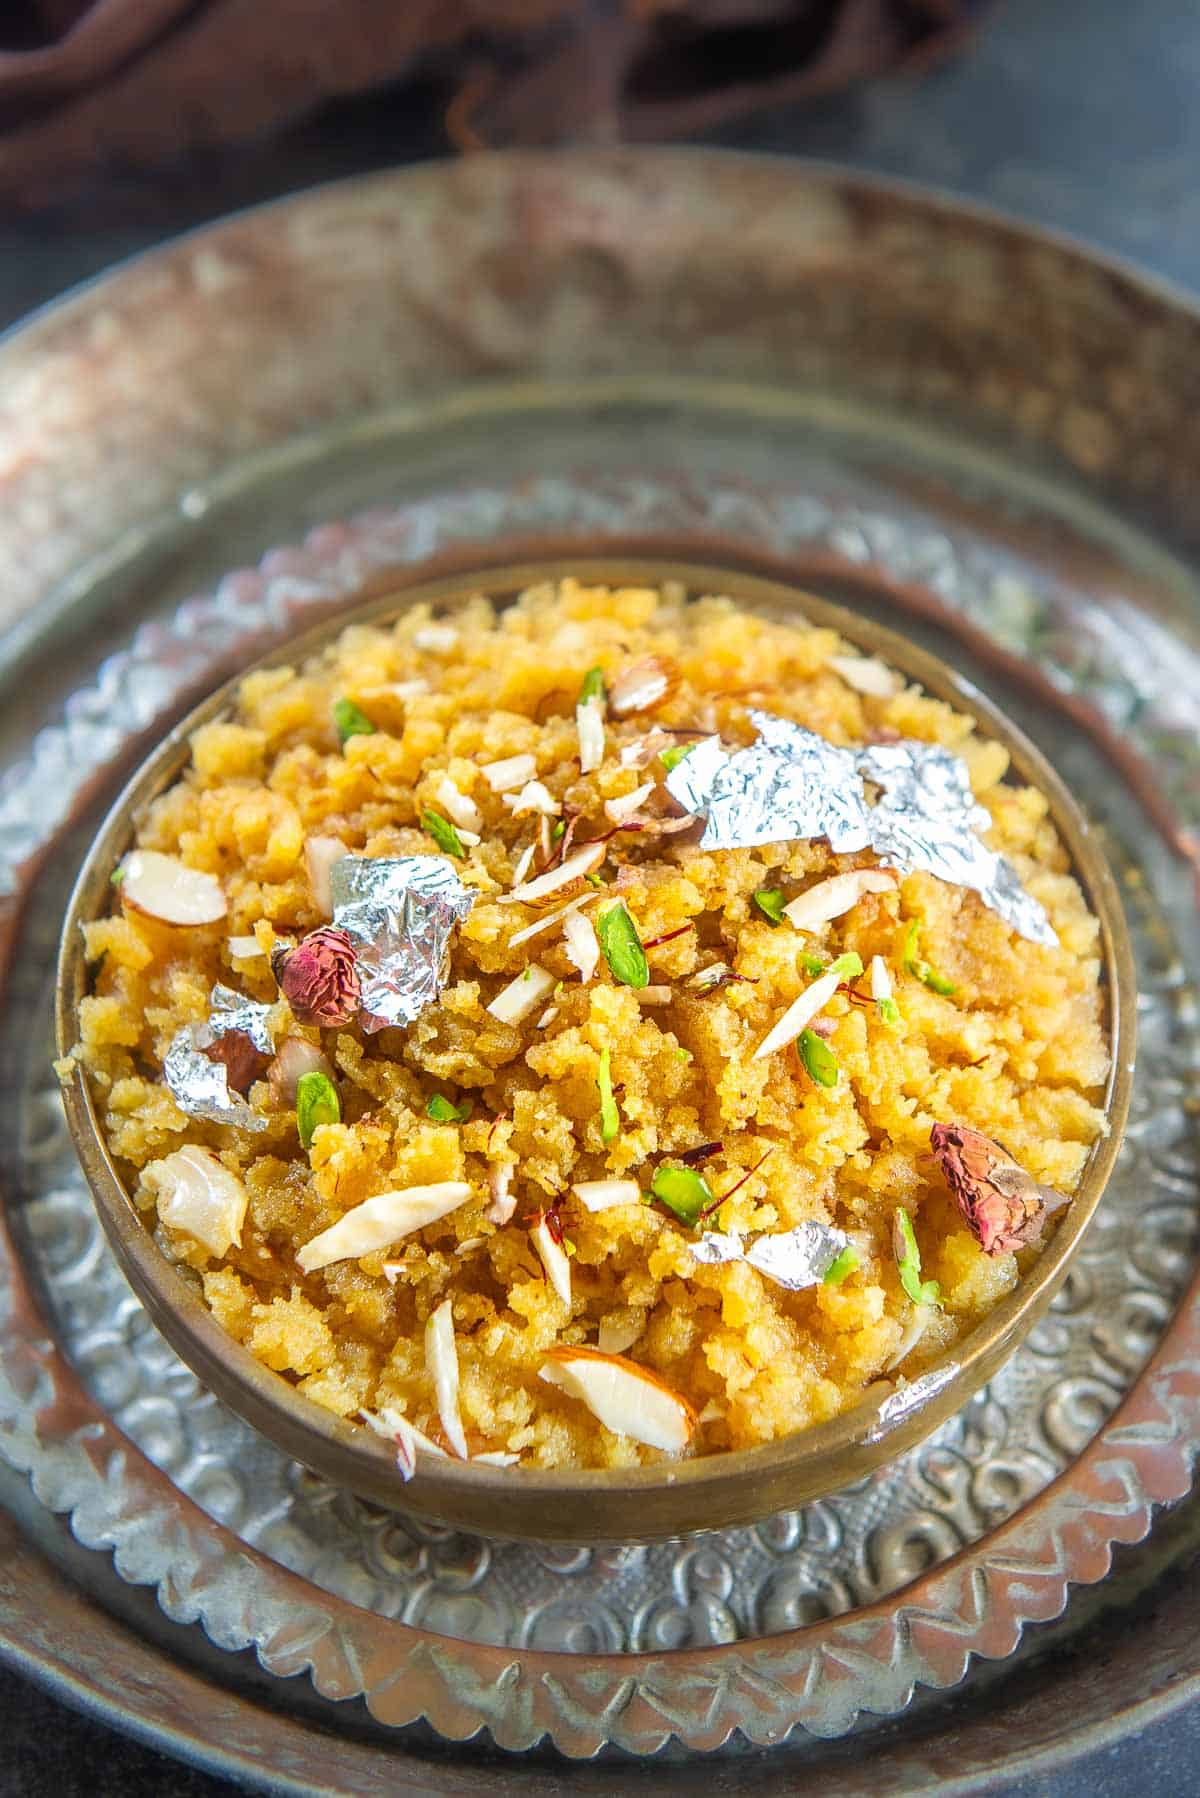 Moong Dal Halwa served in a bowl.